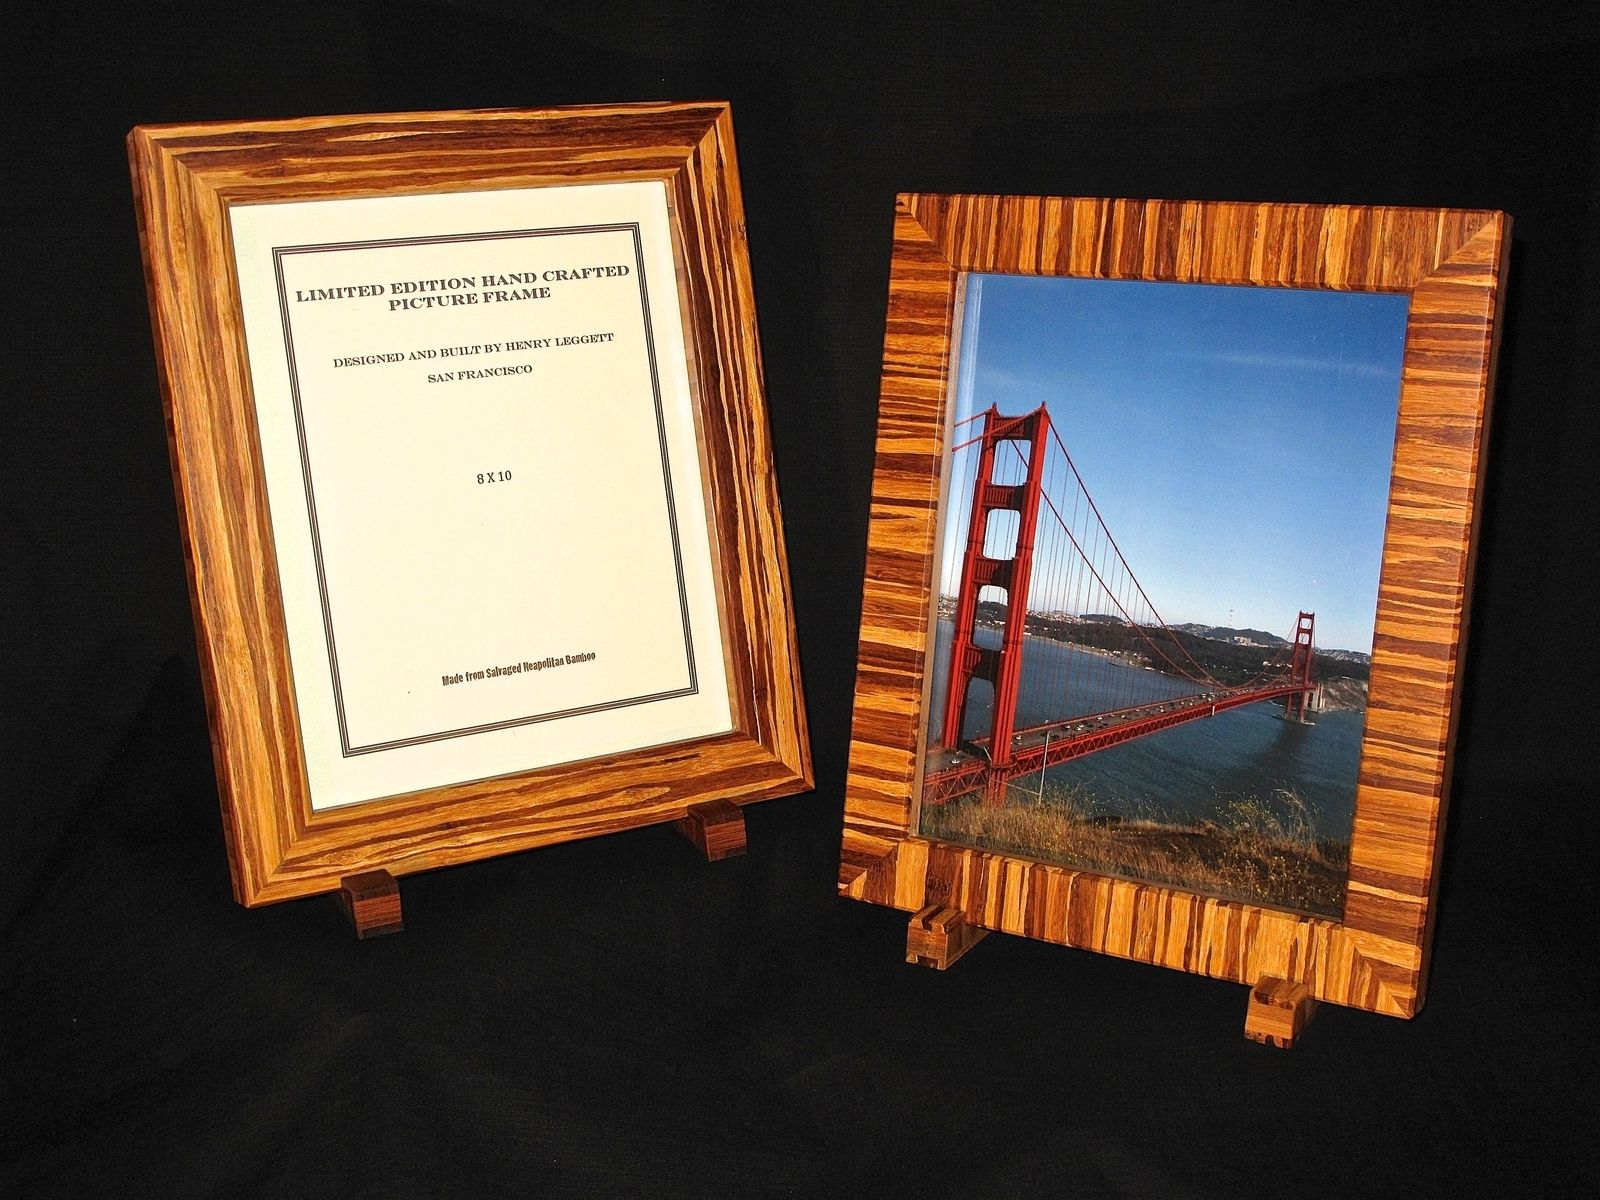 Buy handmade bamboo frames made to order from design trifecta llc custom made bamboo frames jeuxipadfo Images